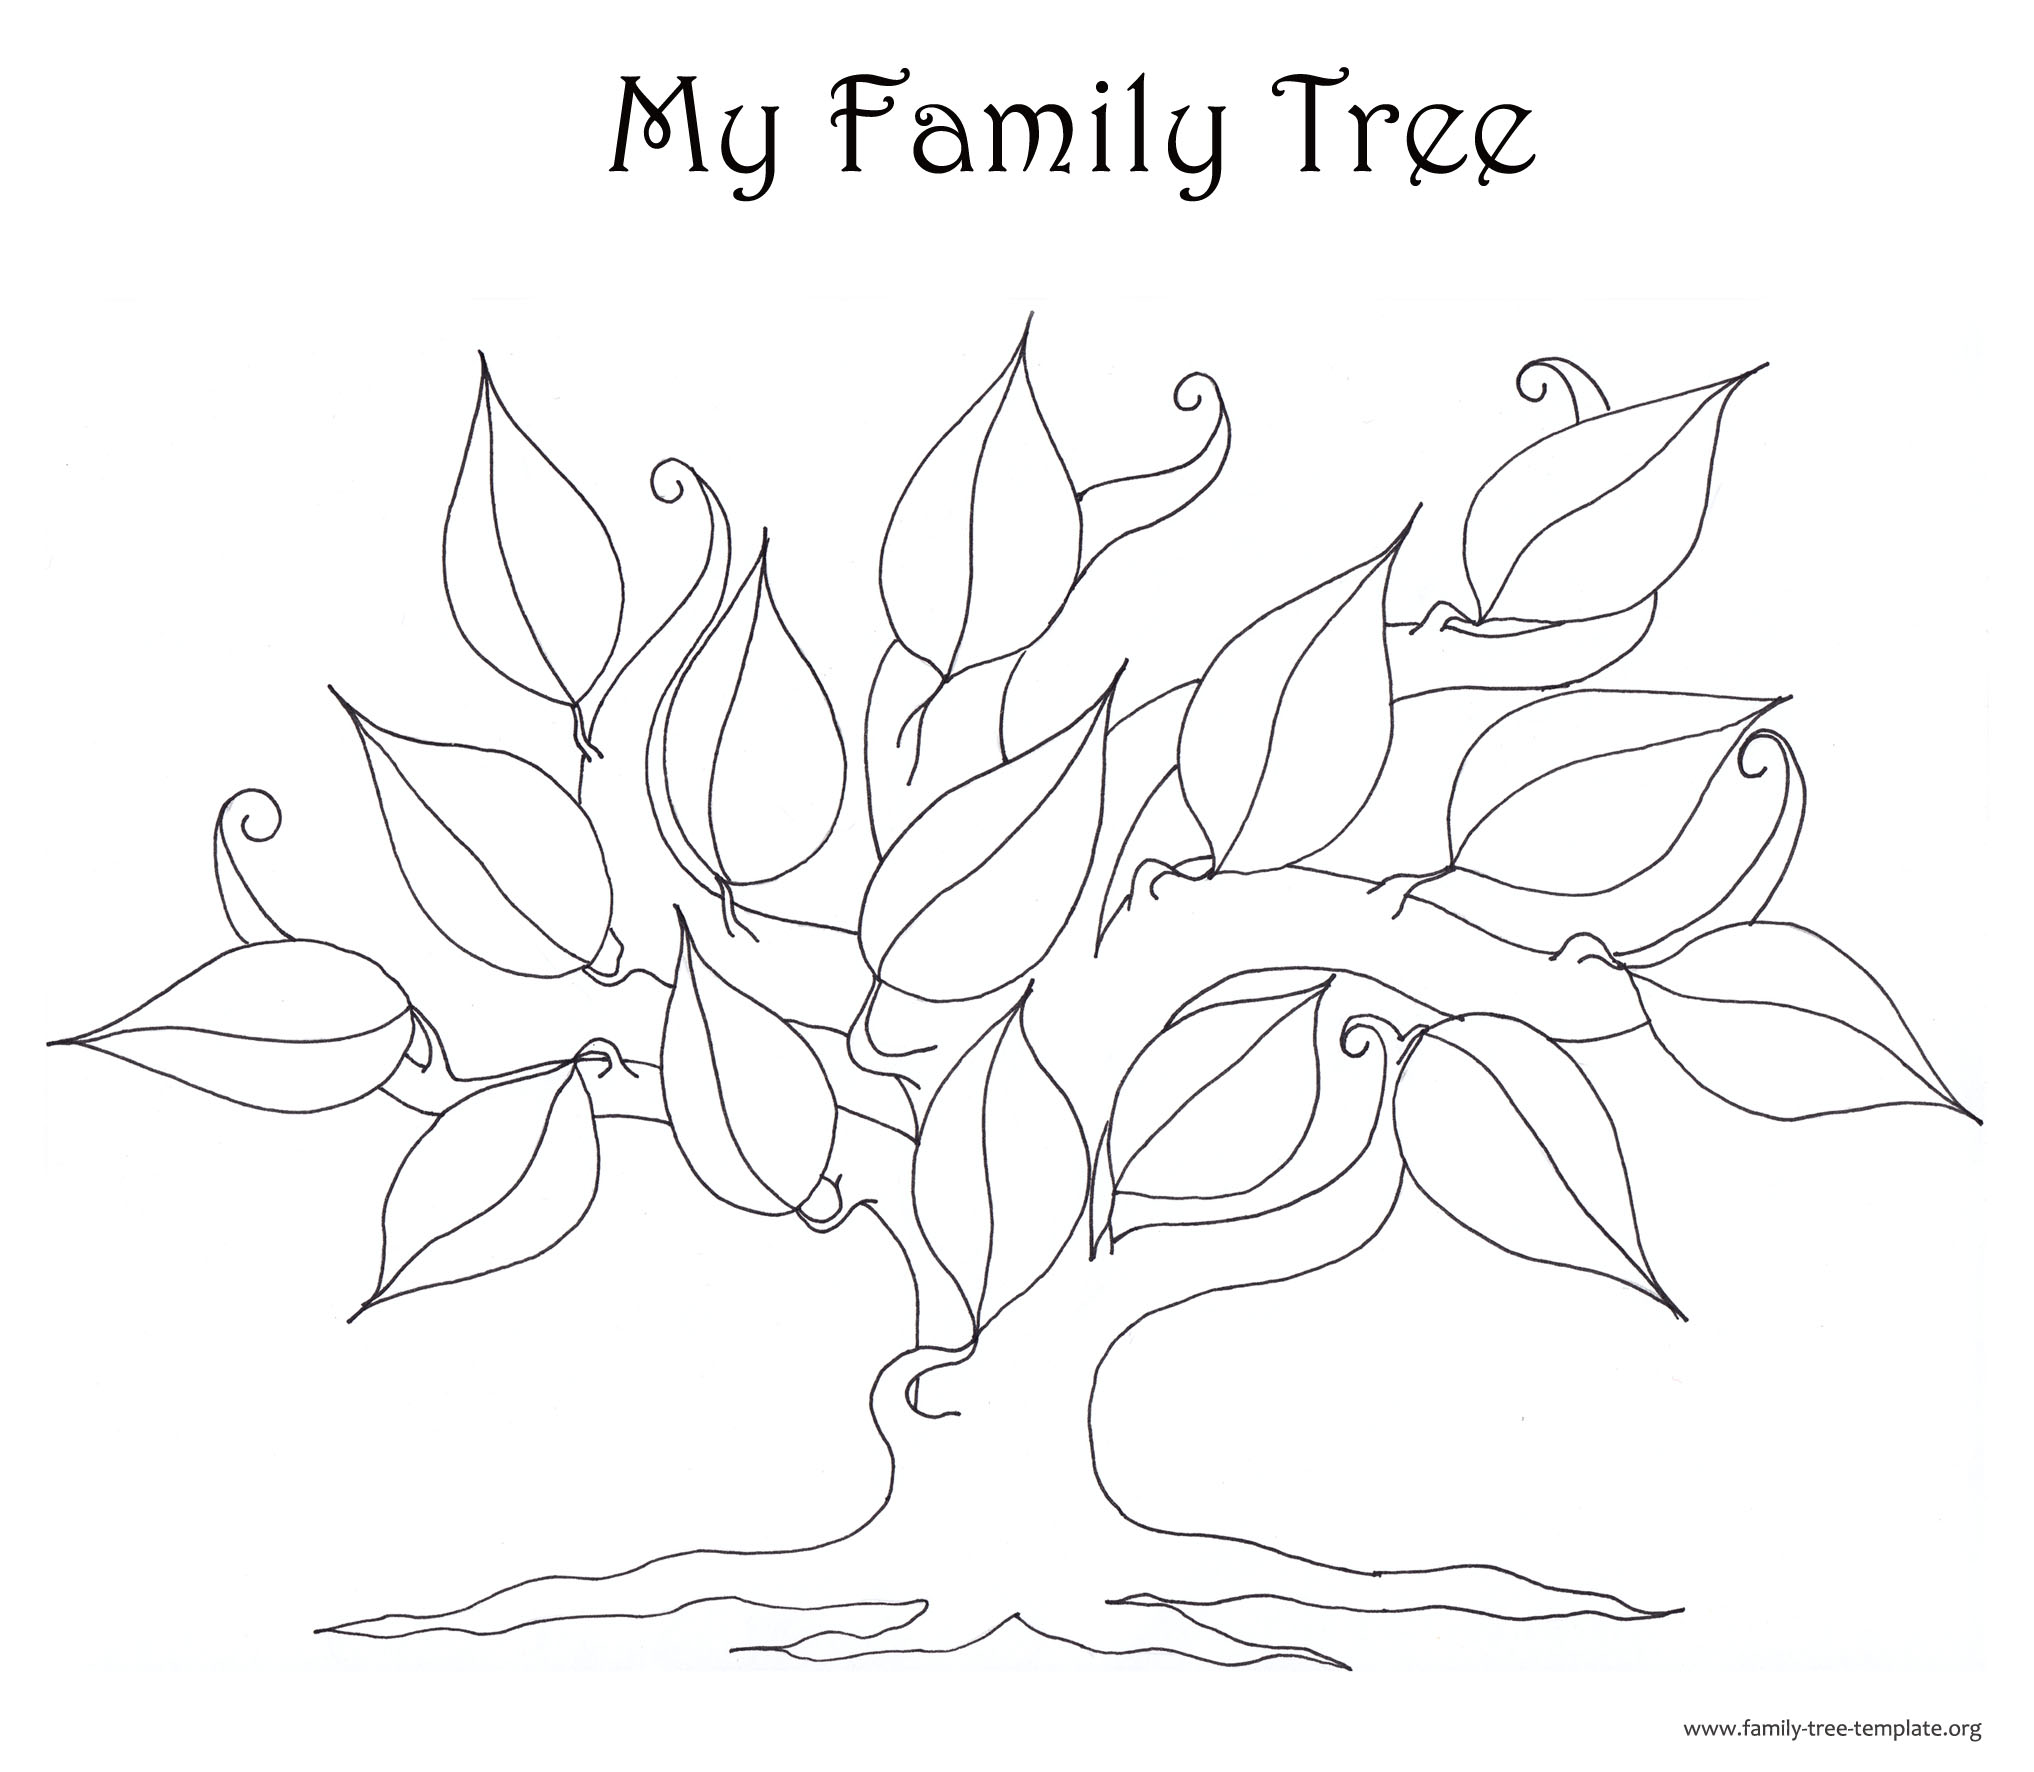 The Non-Structured Family Tree as a Coloring Page for Kids